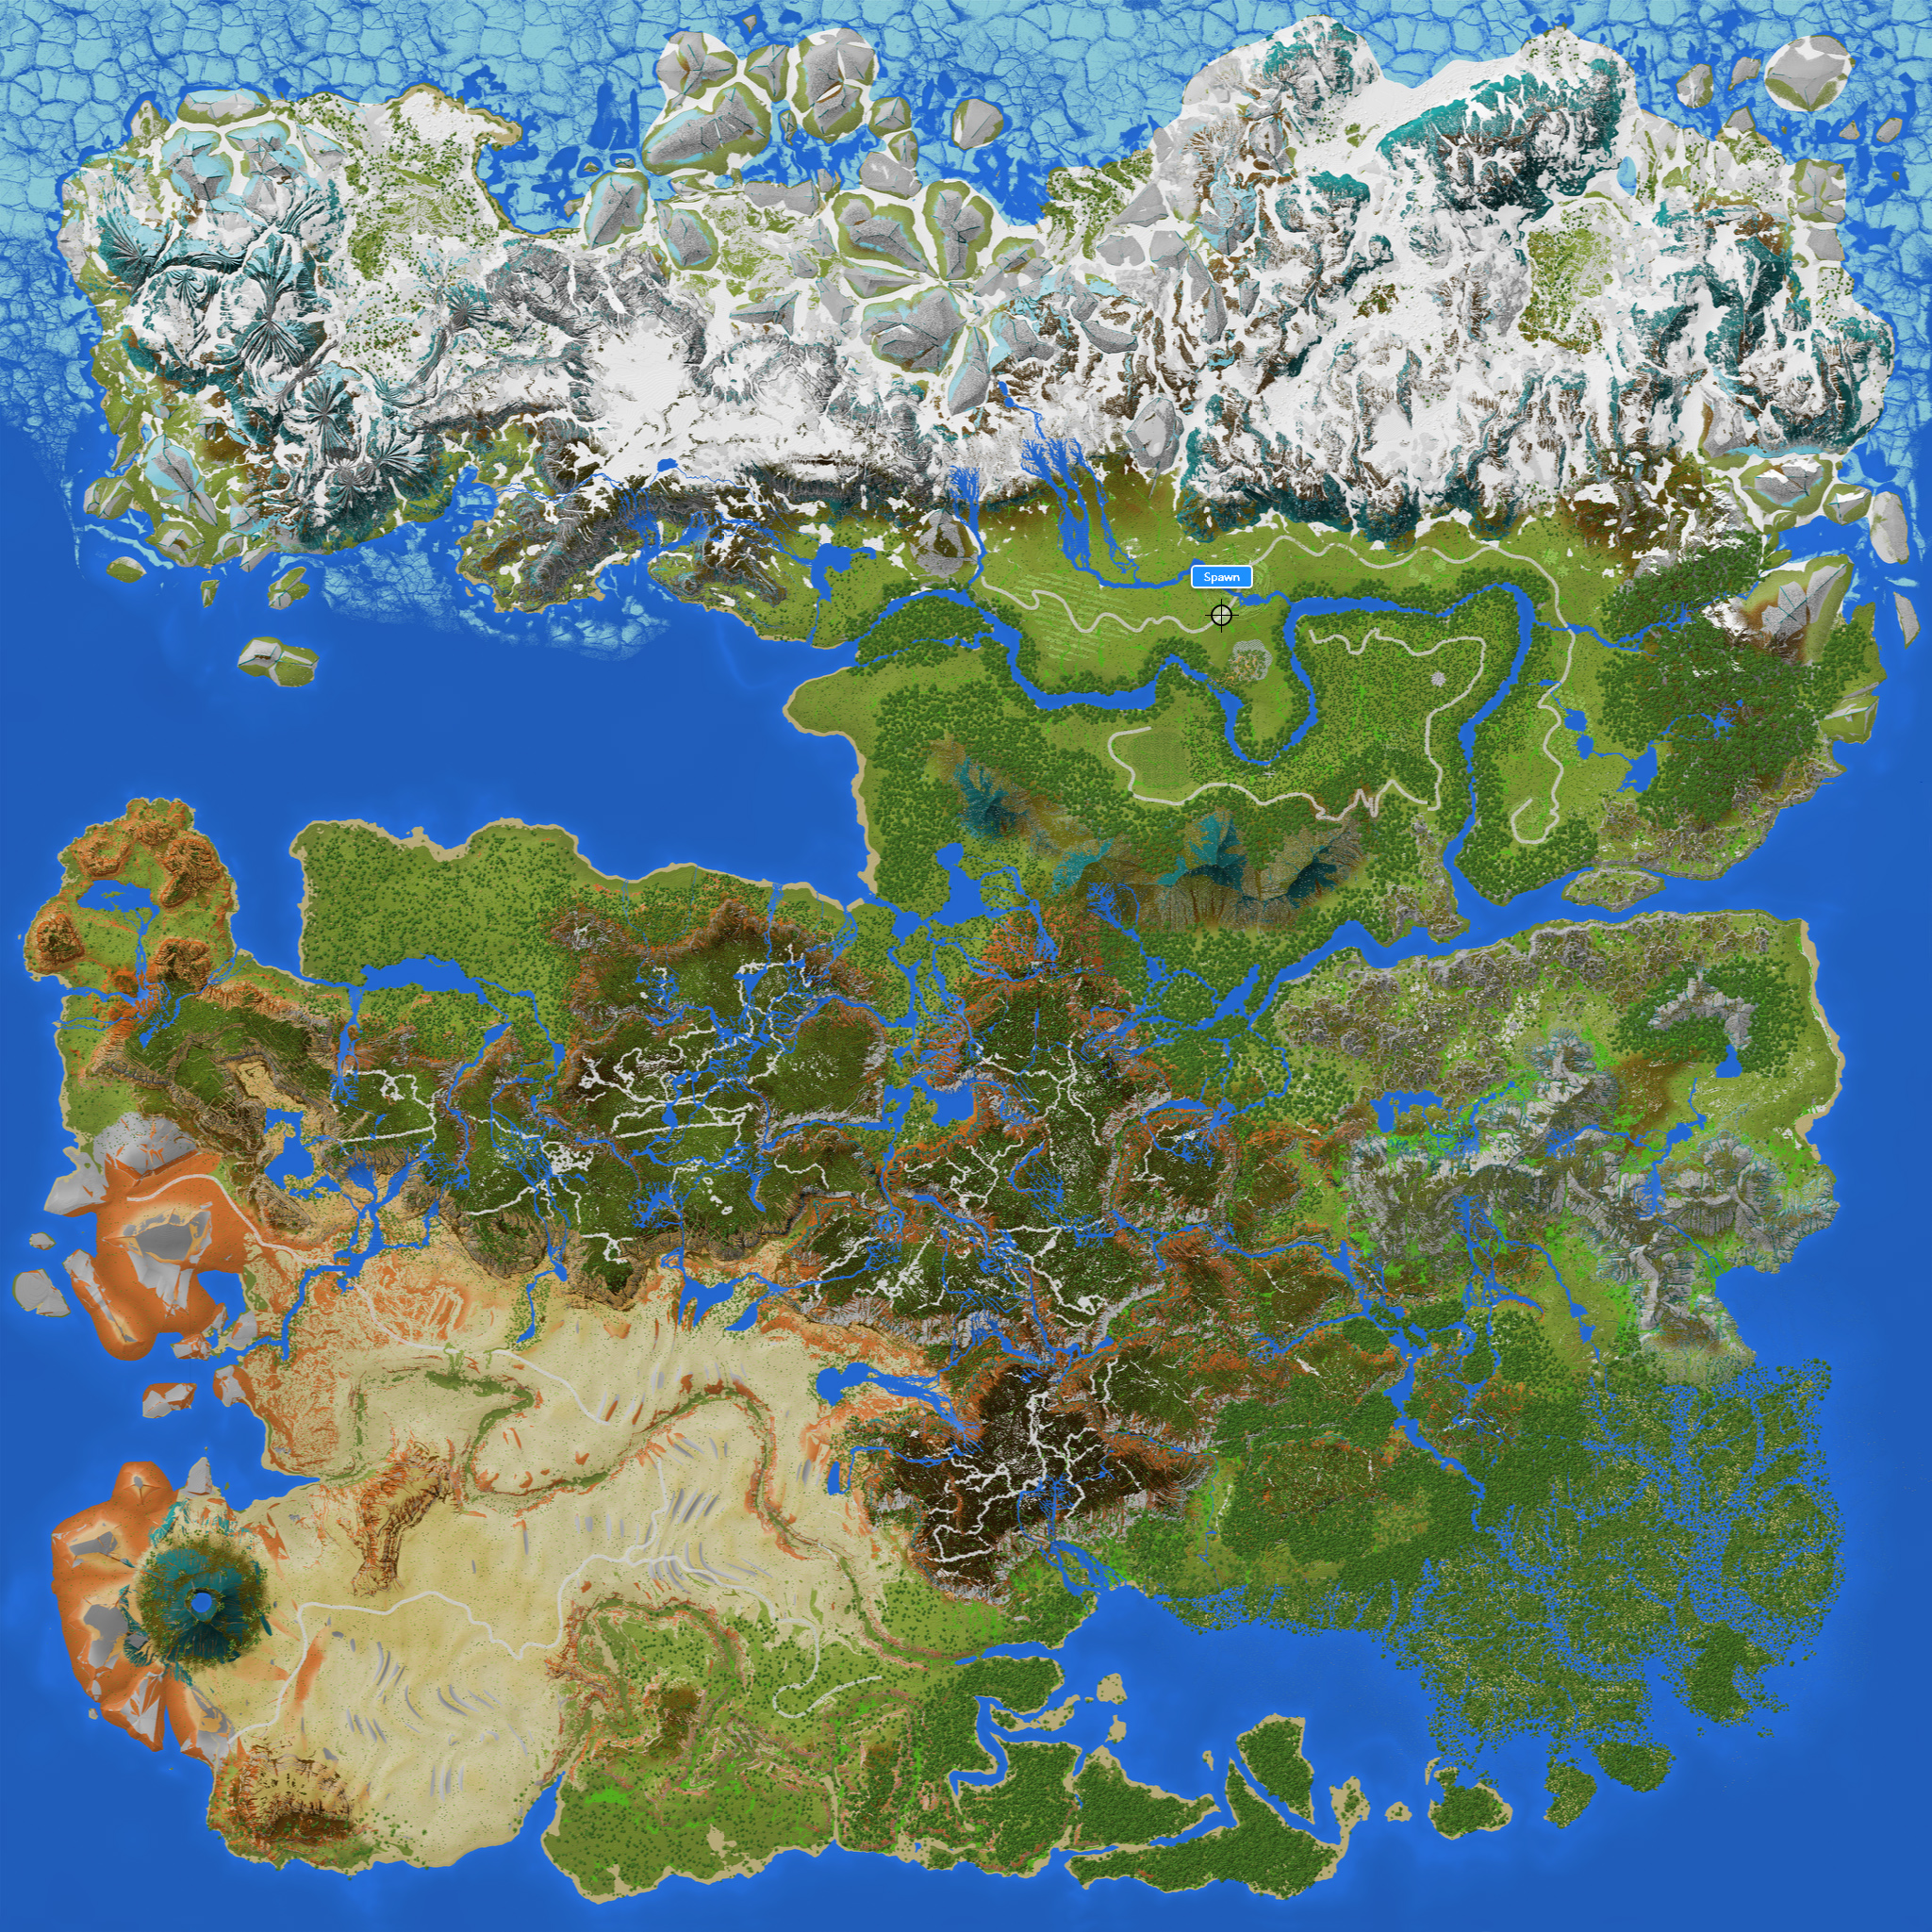 The map without legends